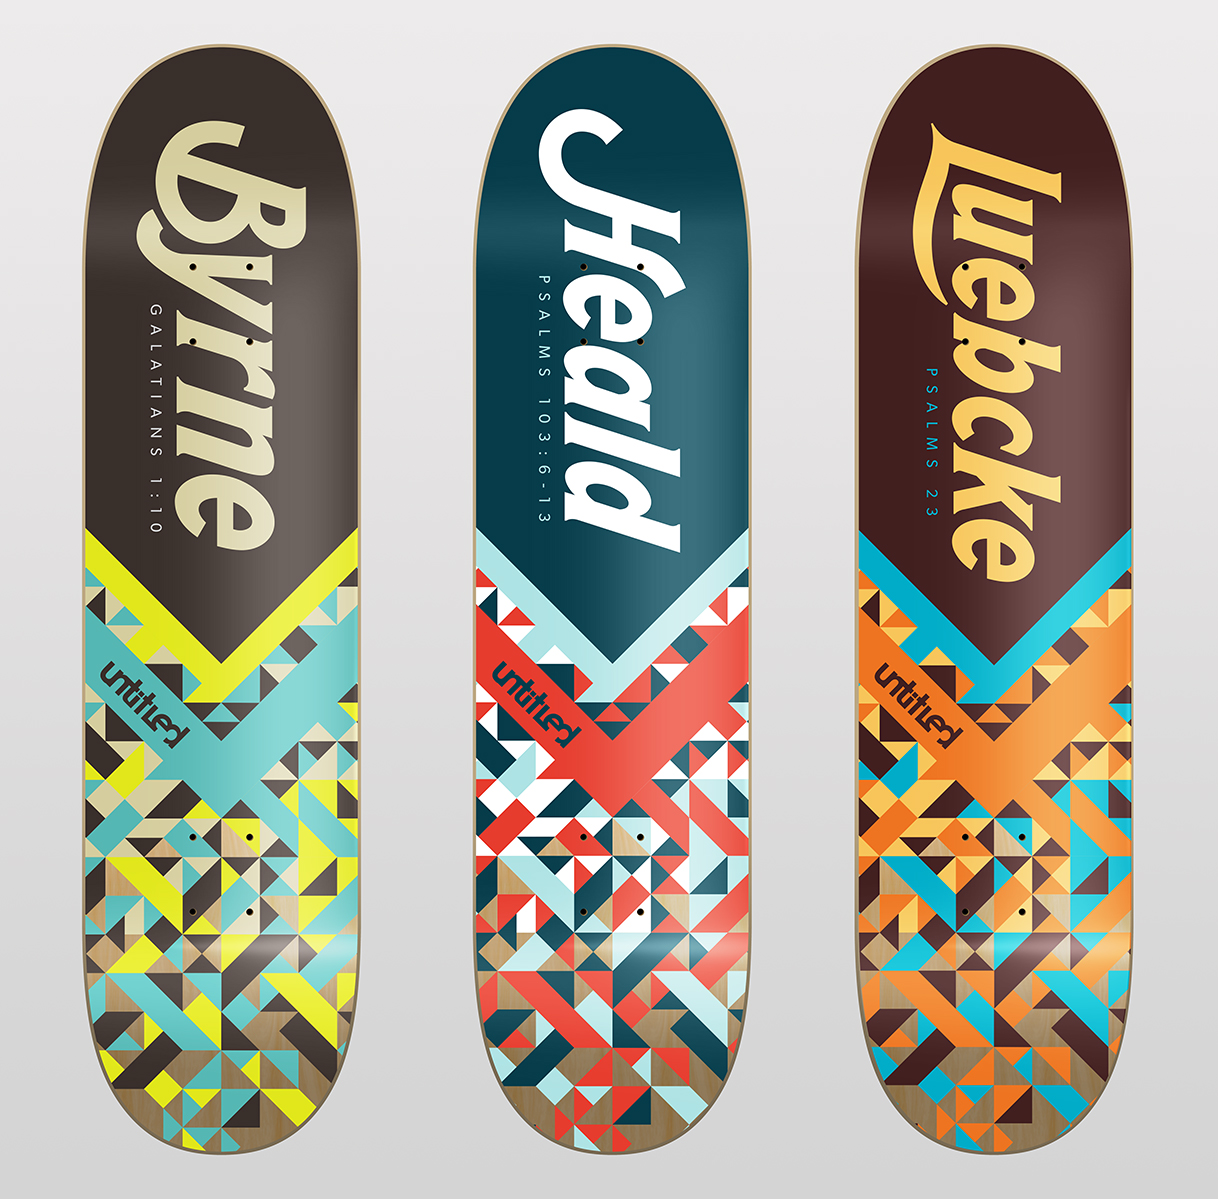 image gallery skateboard designs - Skateboard Design Ideas